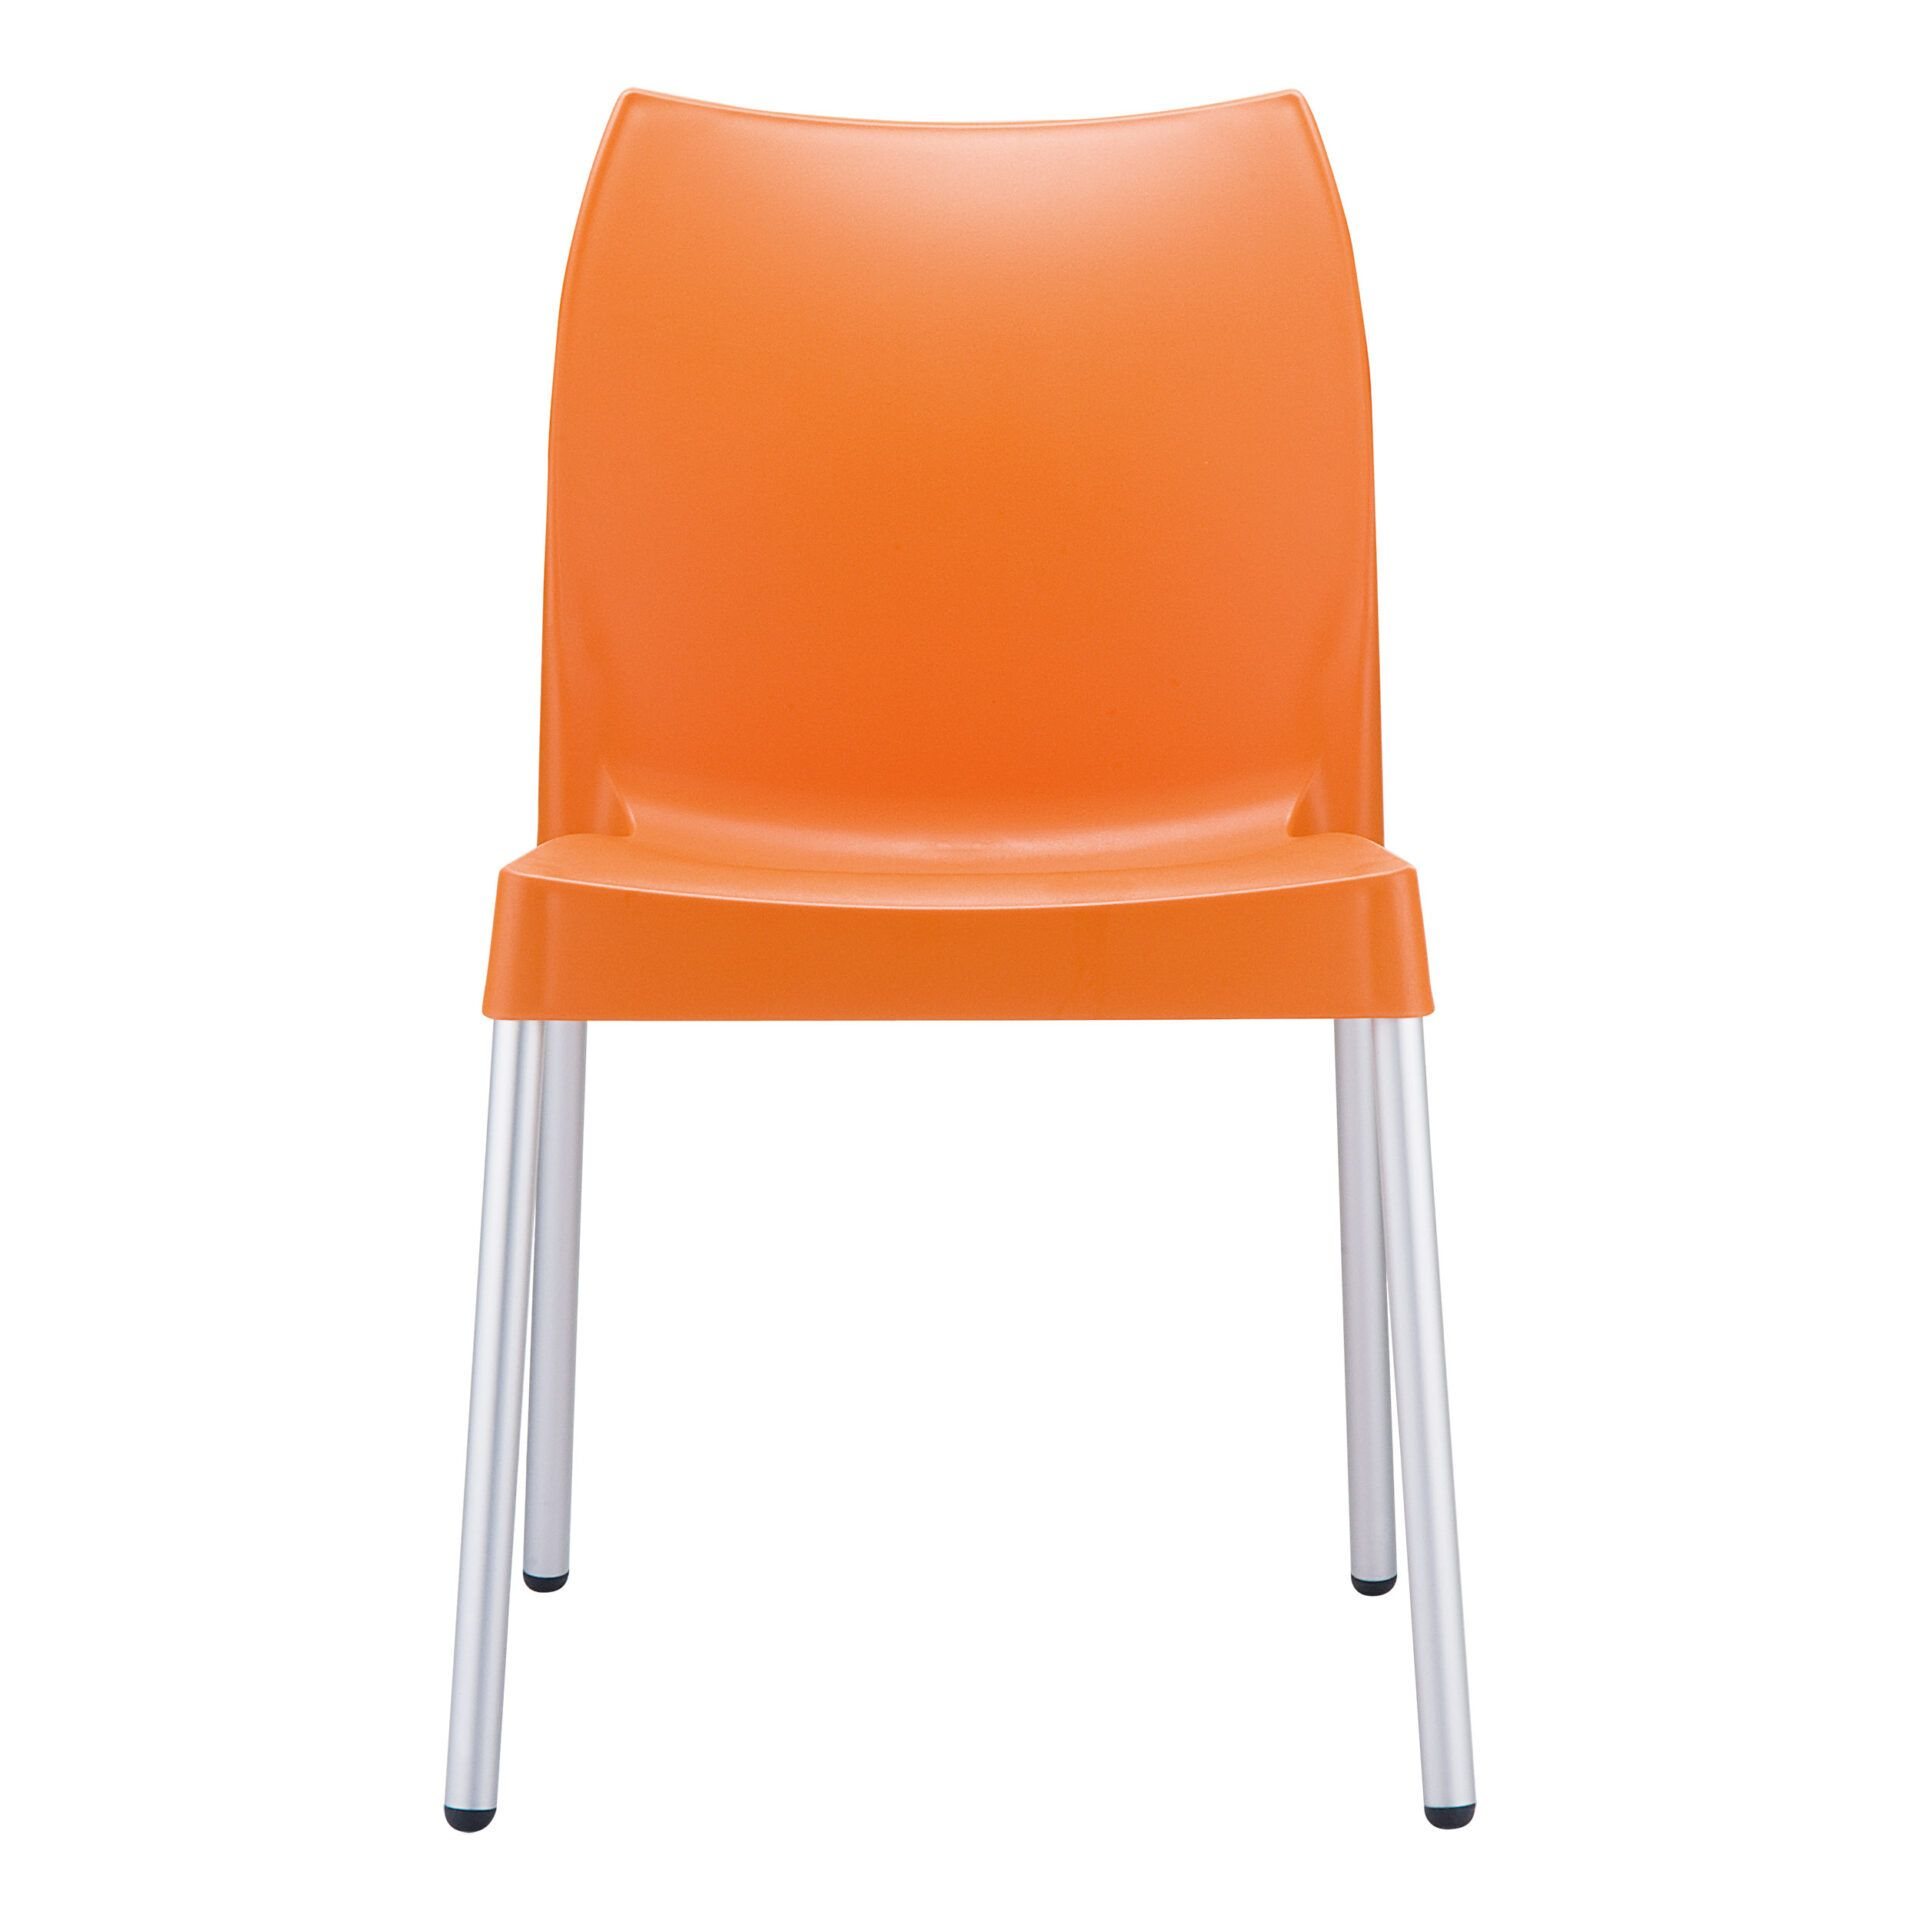 commercial outdoor hospitality seating vita chair orange front